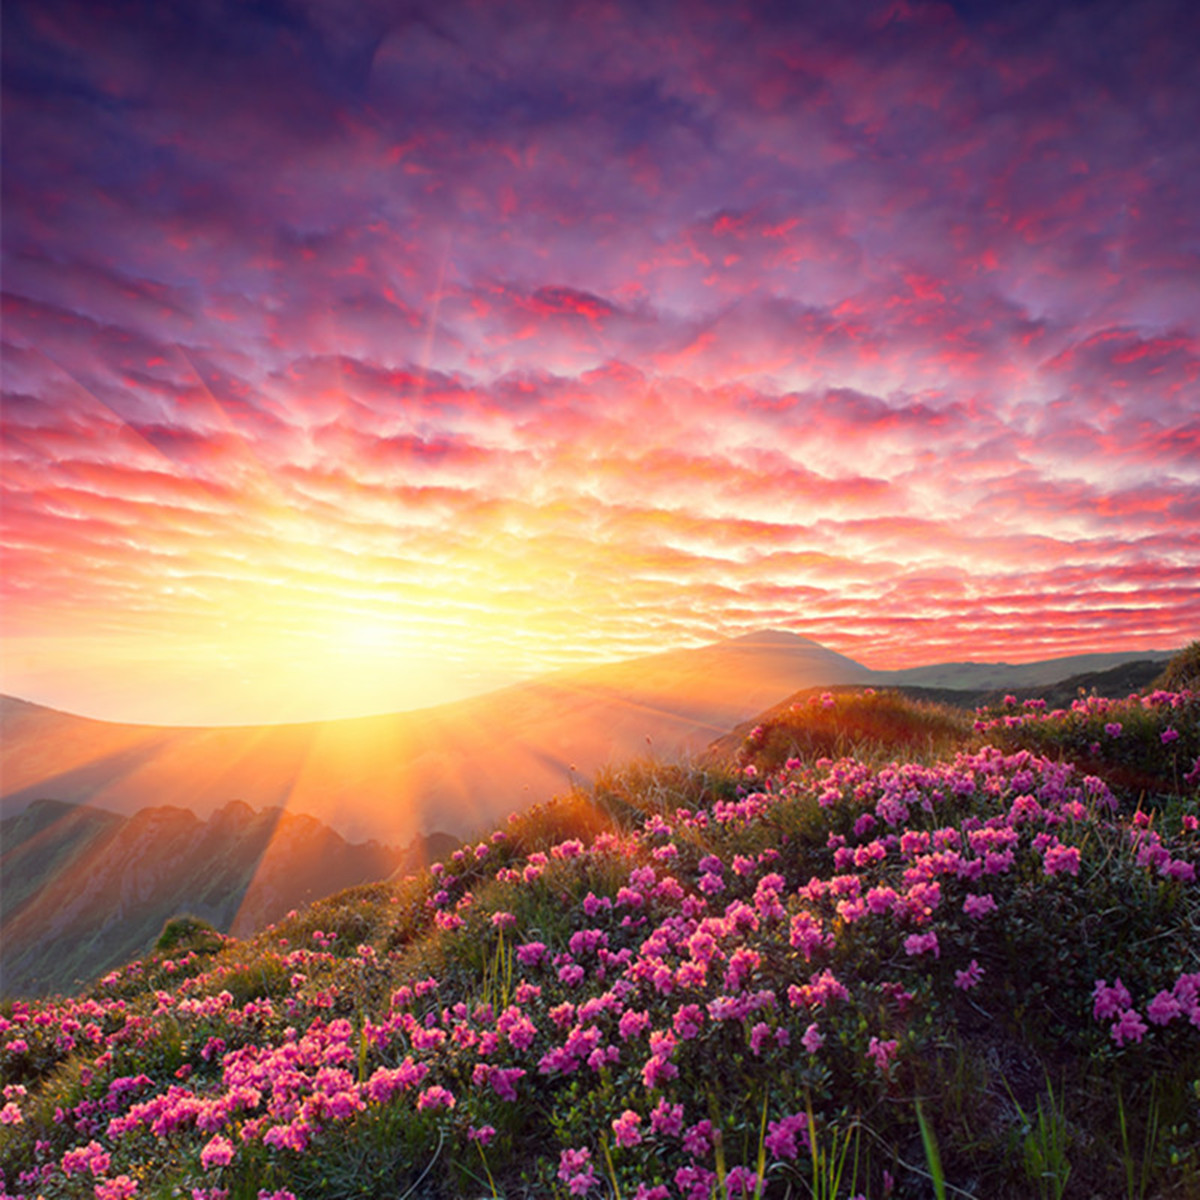 Sunrise Above The Flowers